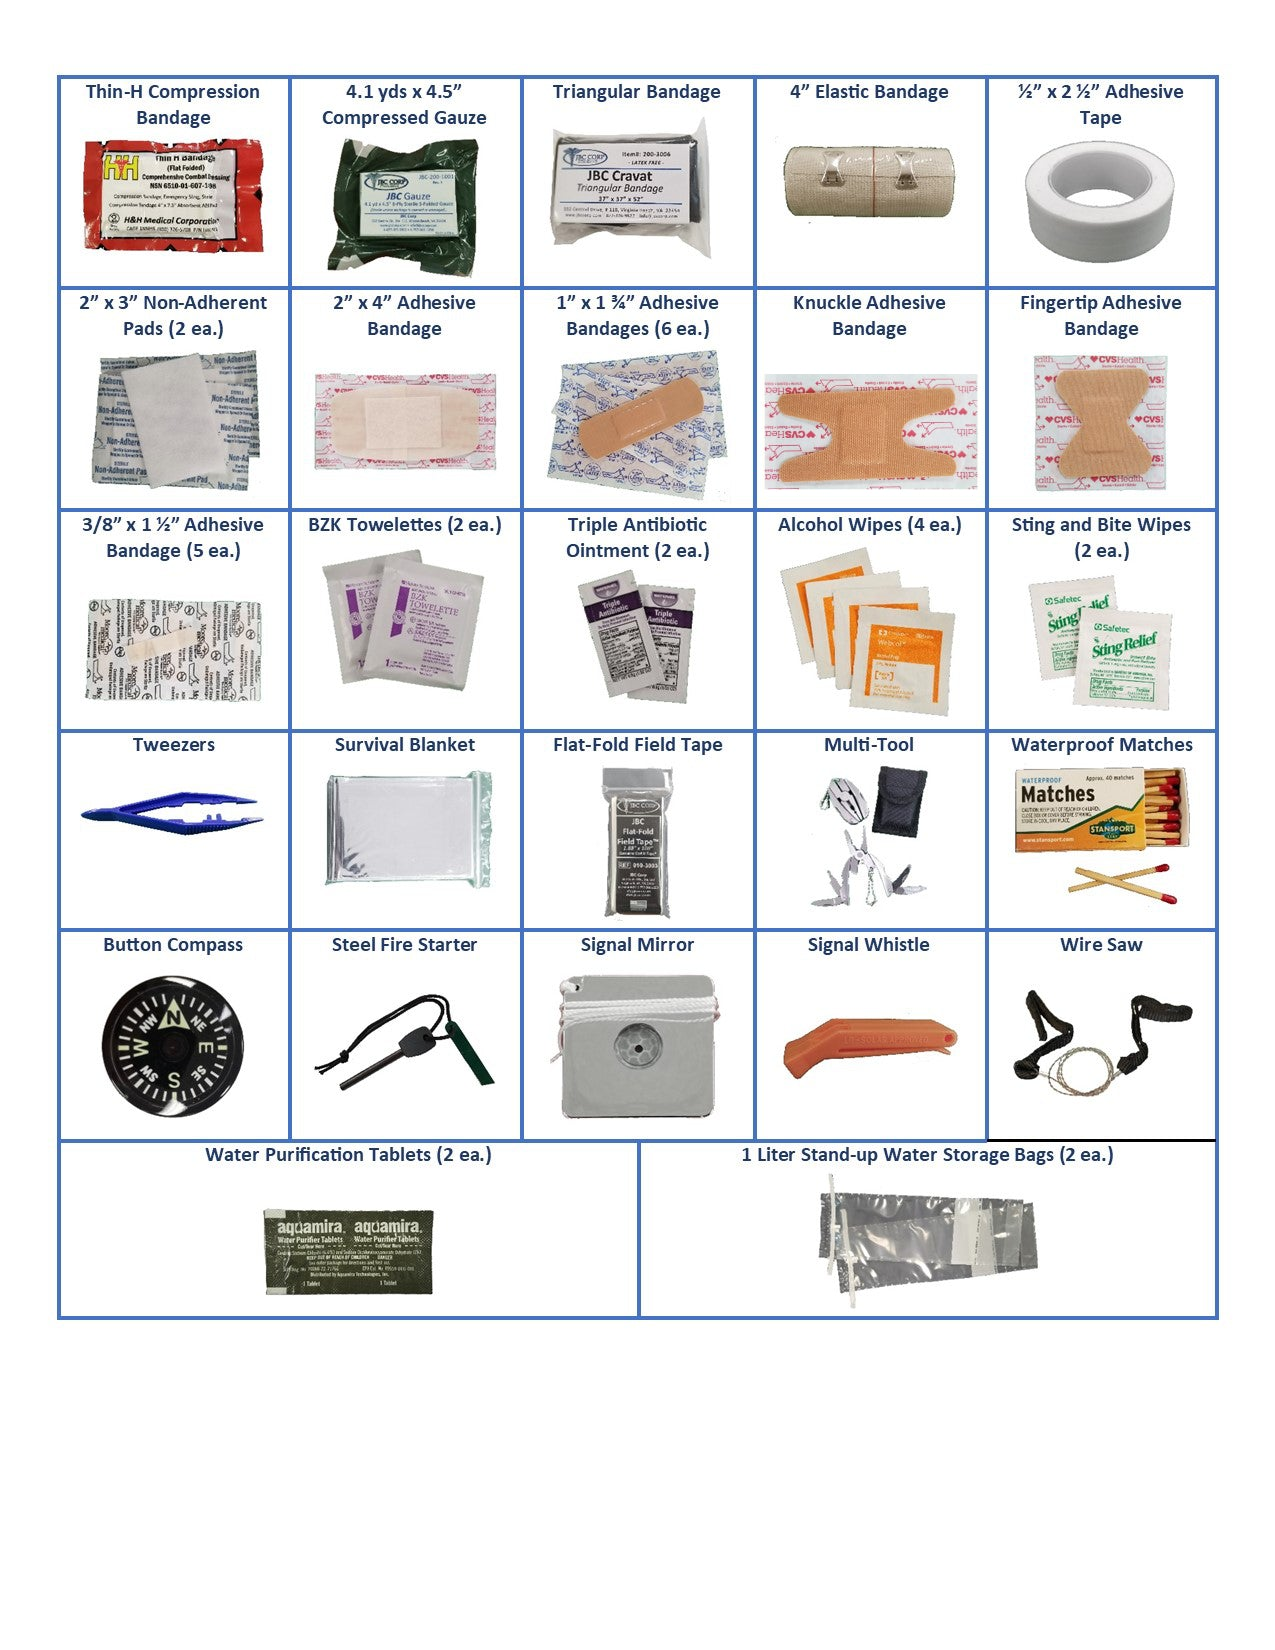 An image showing the complete content list of the JBC Survival/First Aid Kit